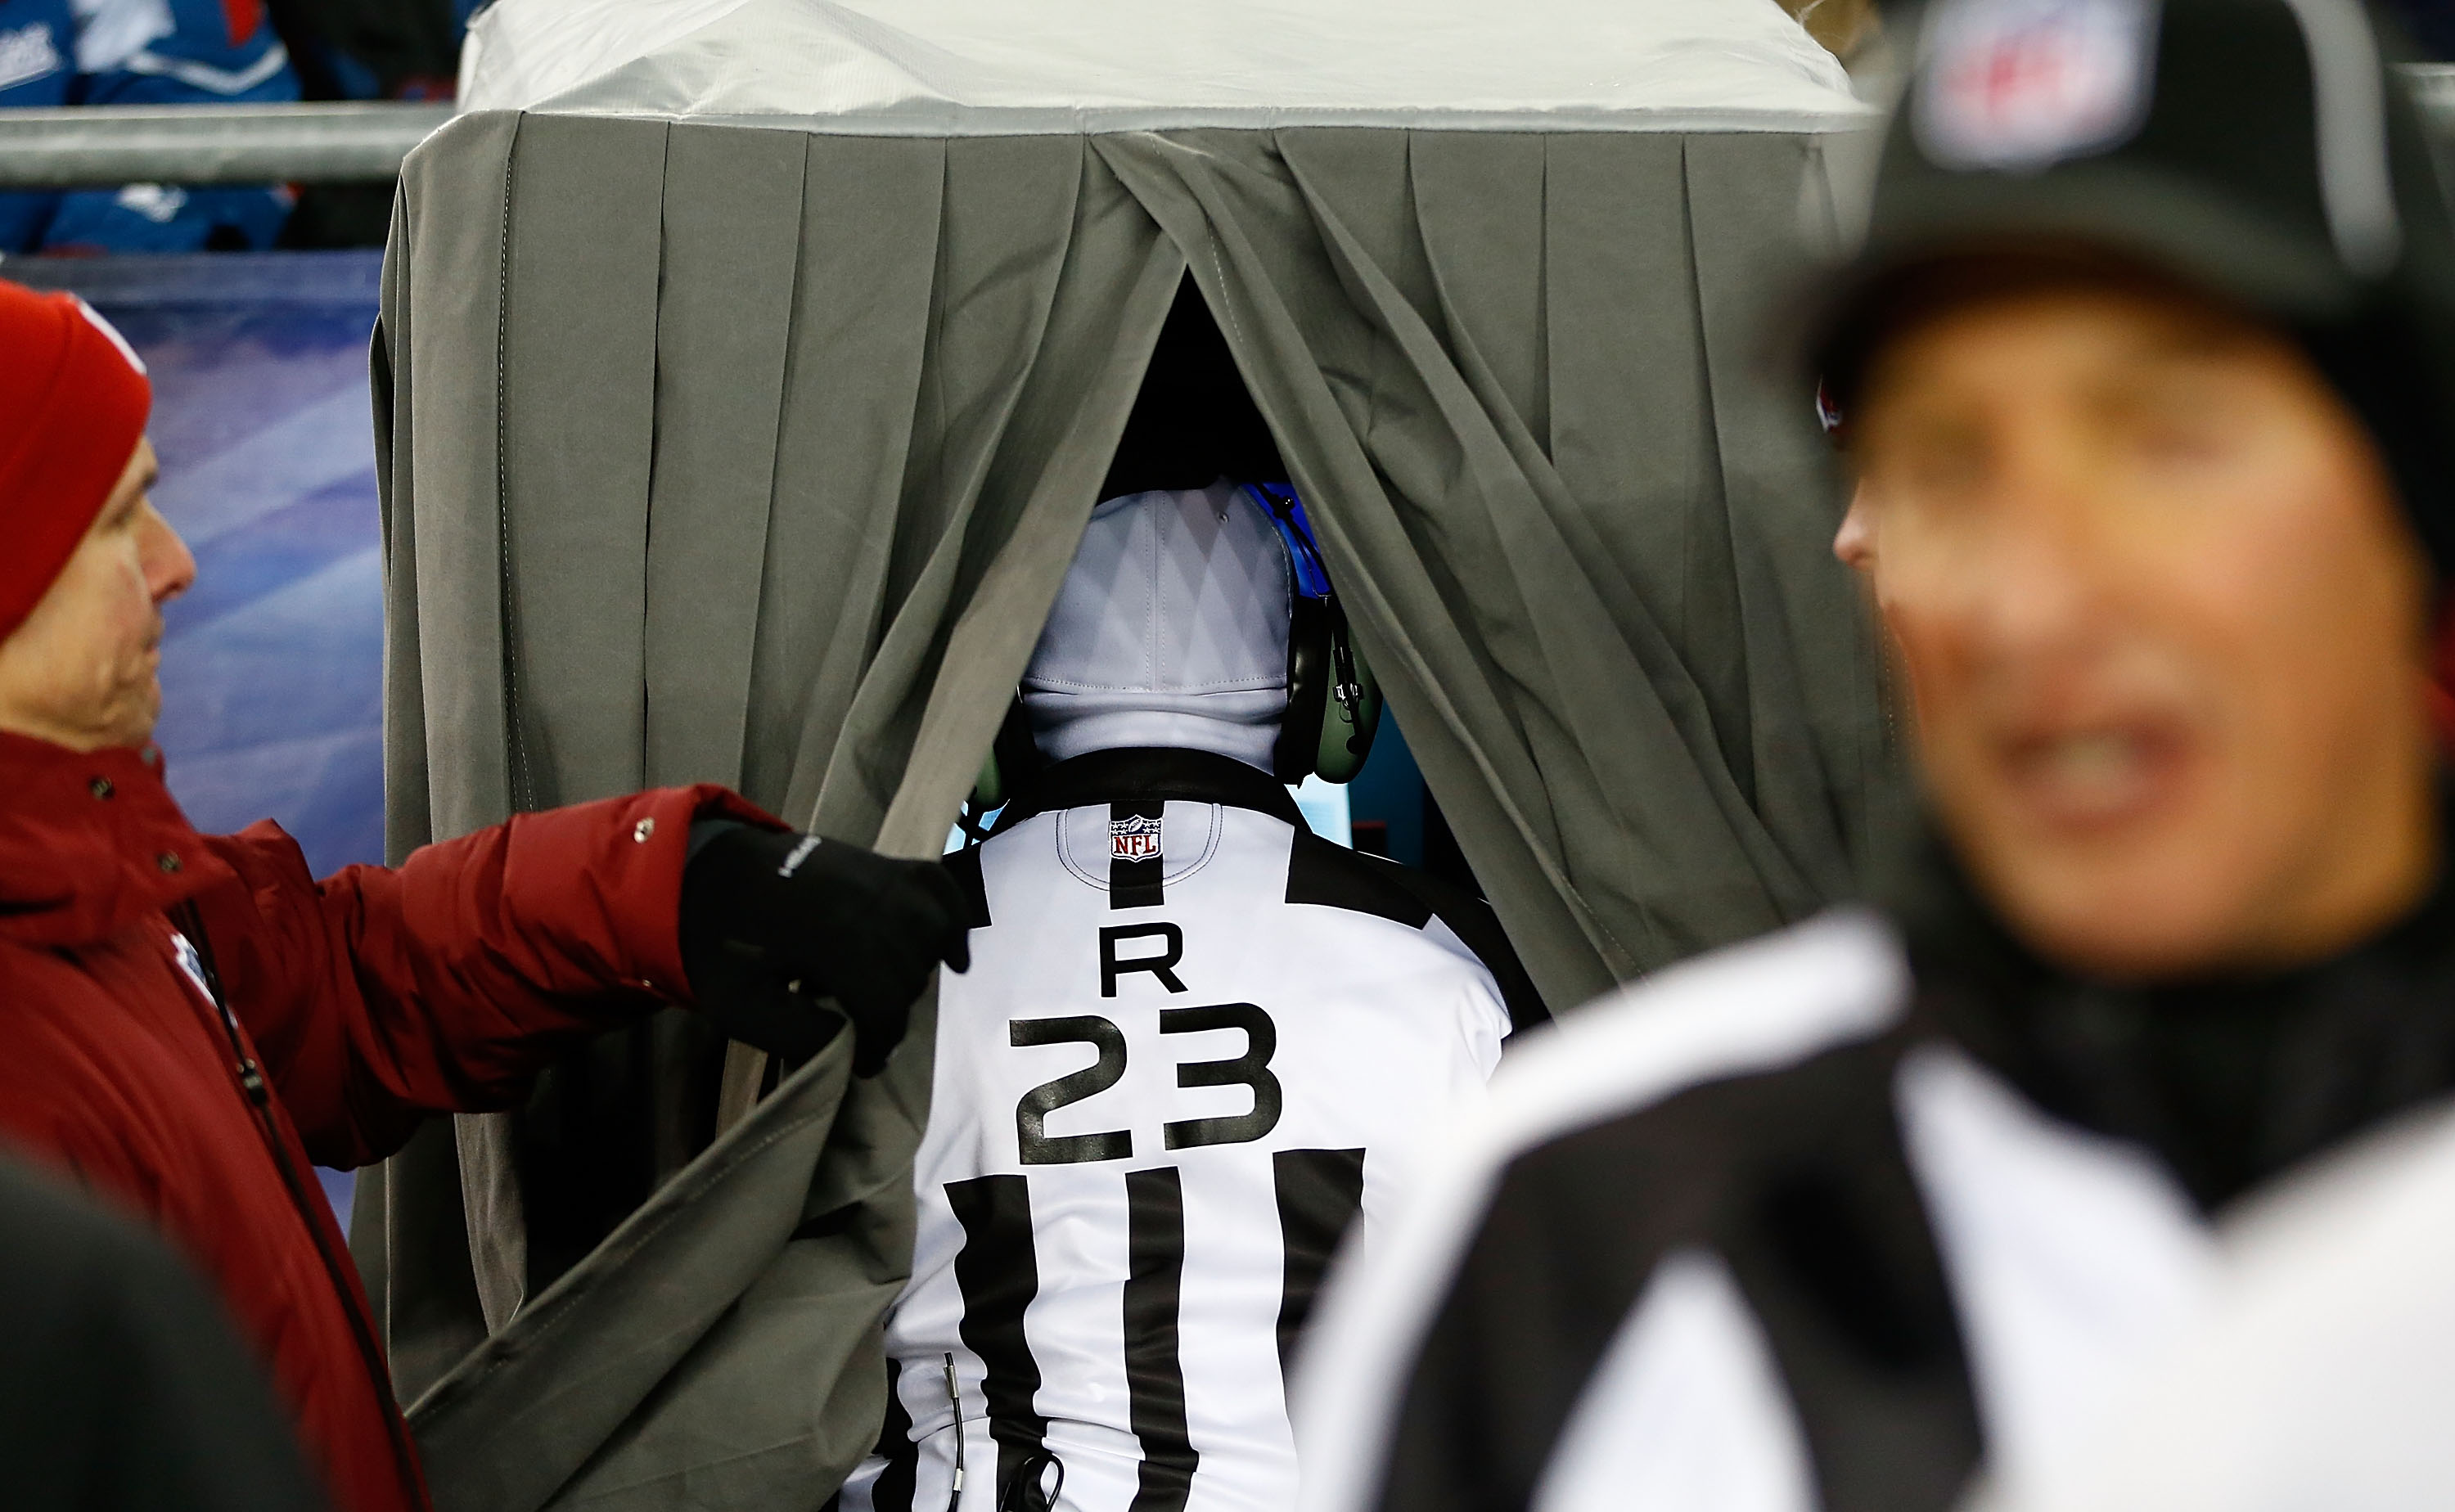 Referee Jerome Boger looks at the screen in the instant replay booth during the game between the Miami Dolphins and the New England Patriots at Gillette Stadium on December 30, 2012 (Getty Images)